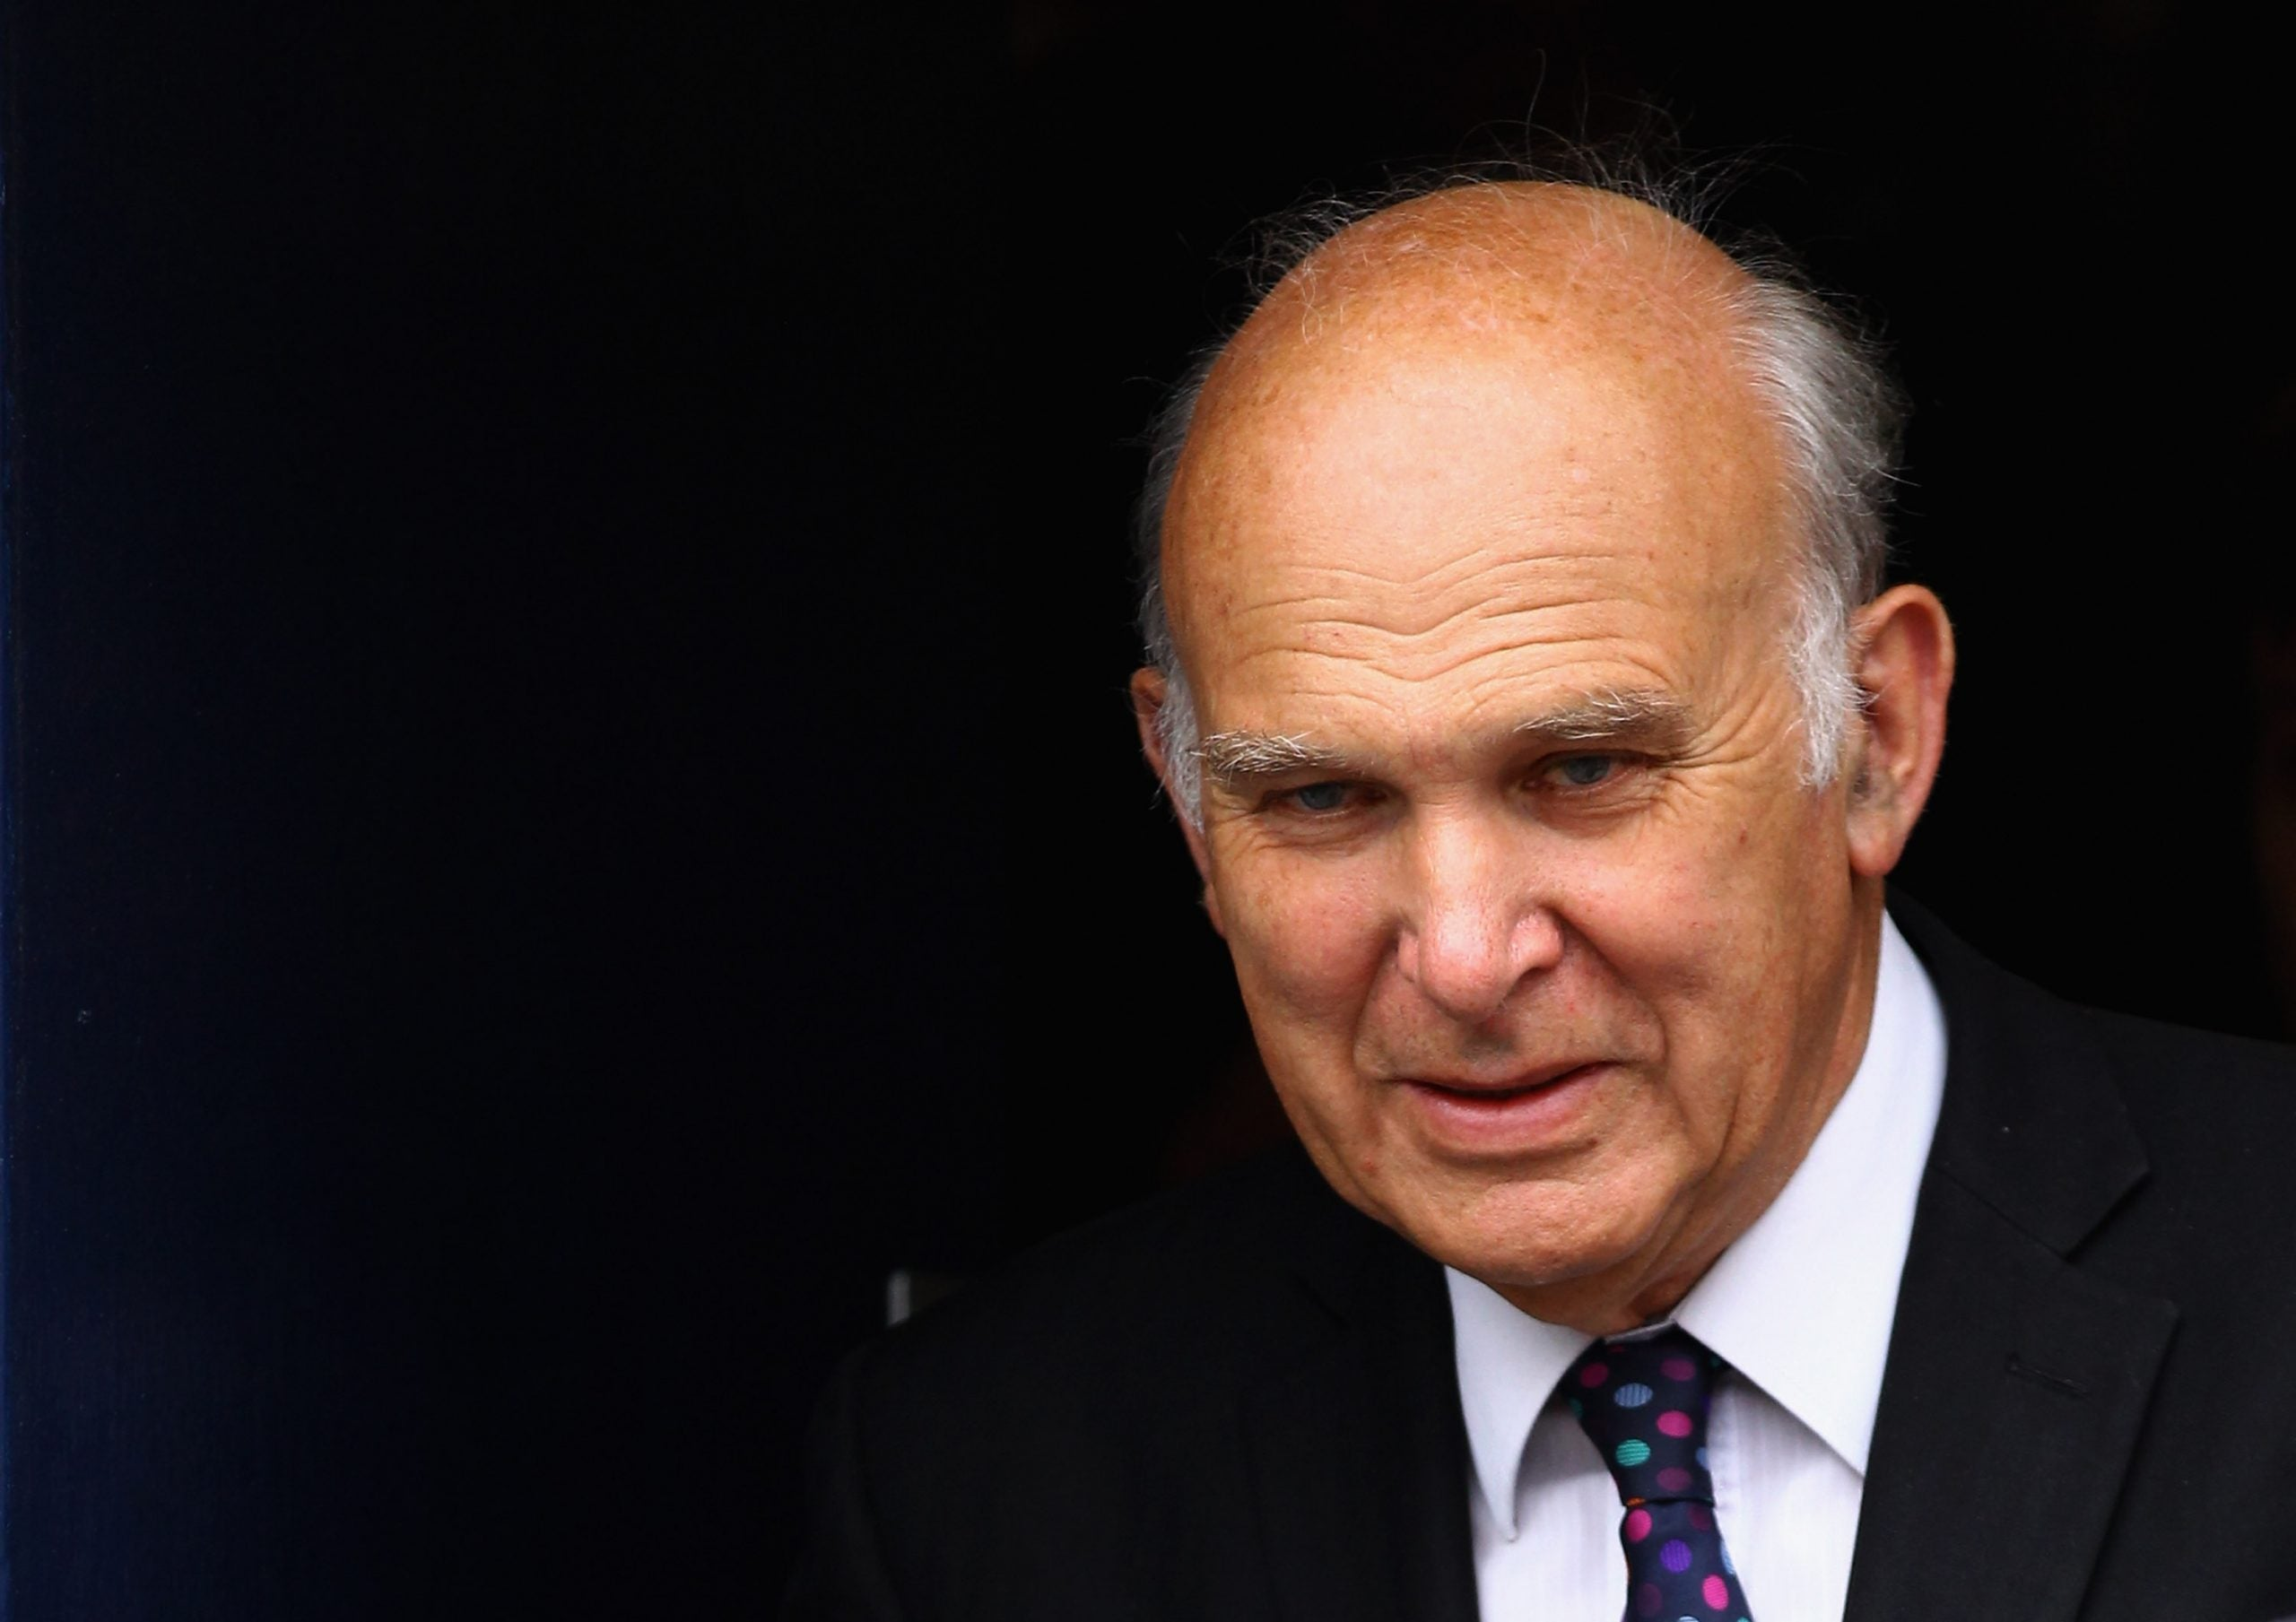 Vince Cable on the economics of power, and how the Lib Dems can gain ground